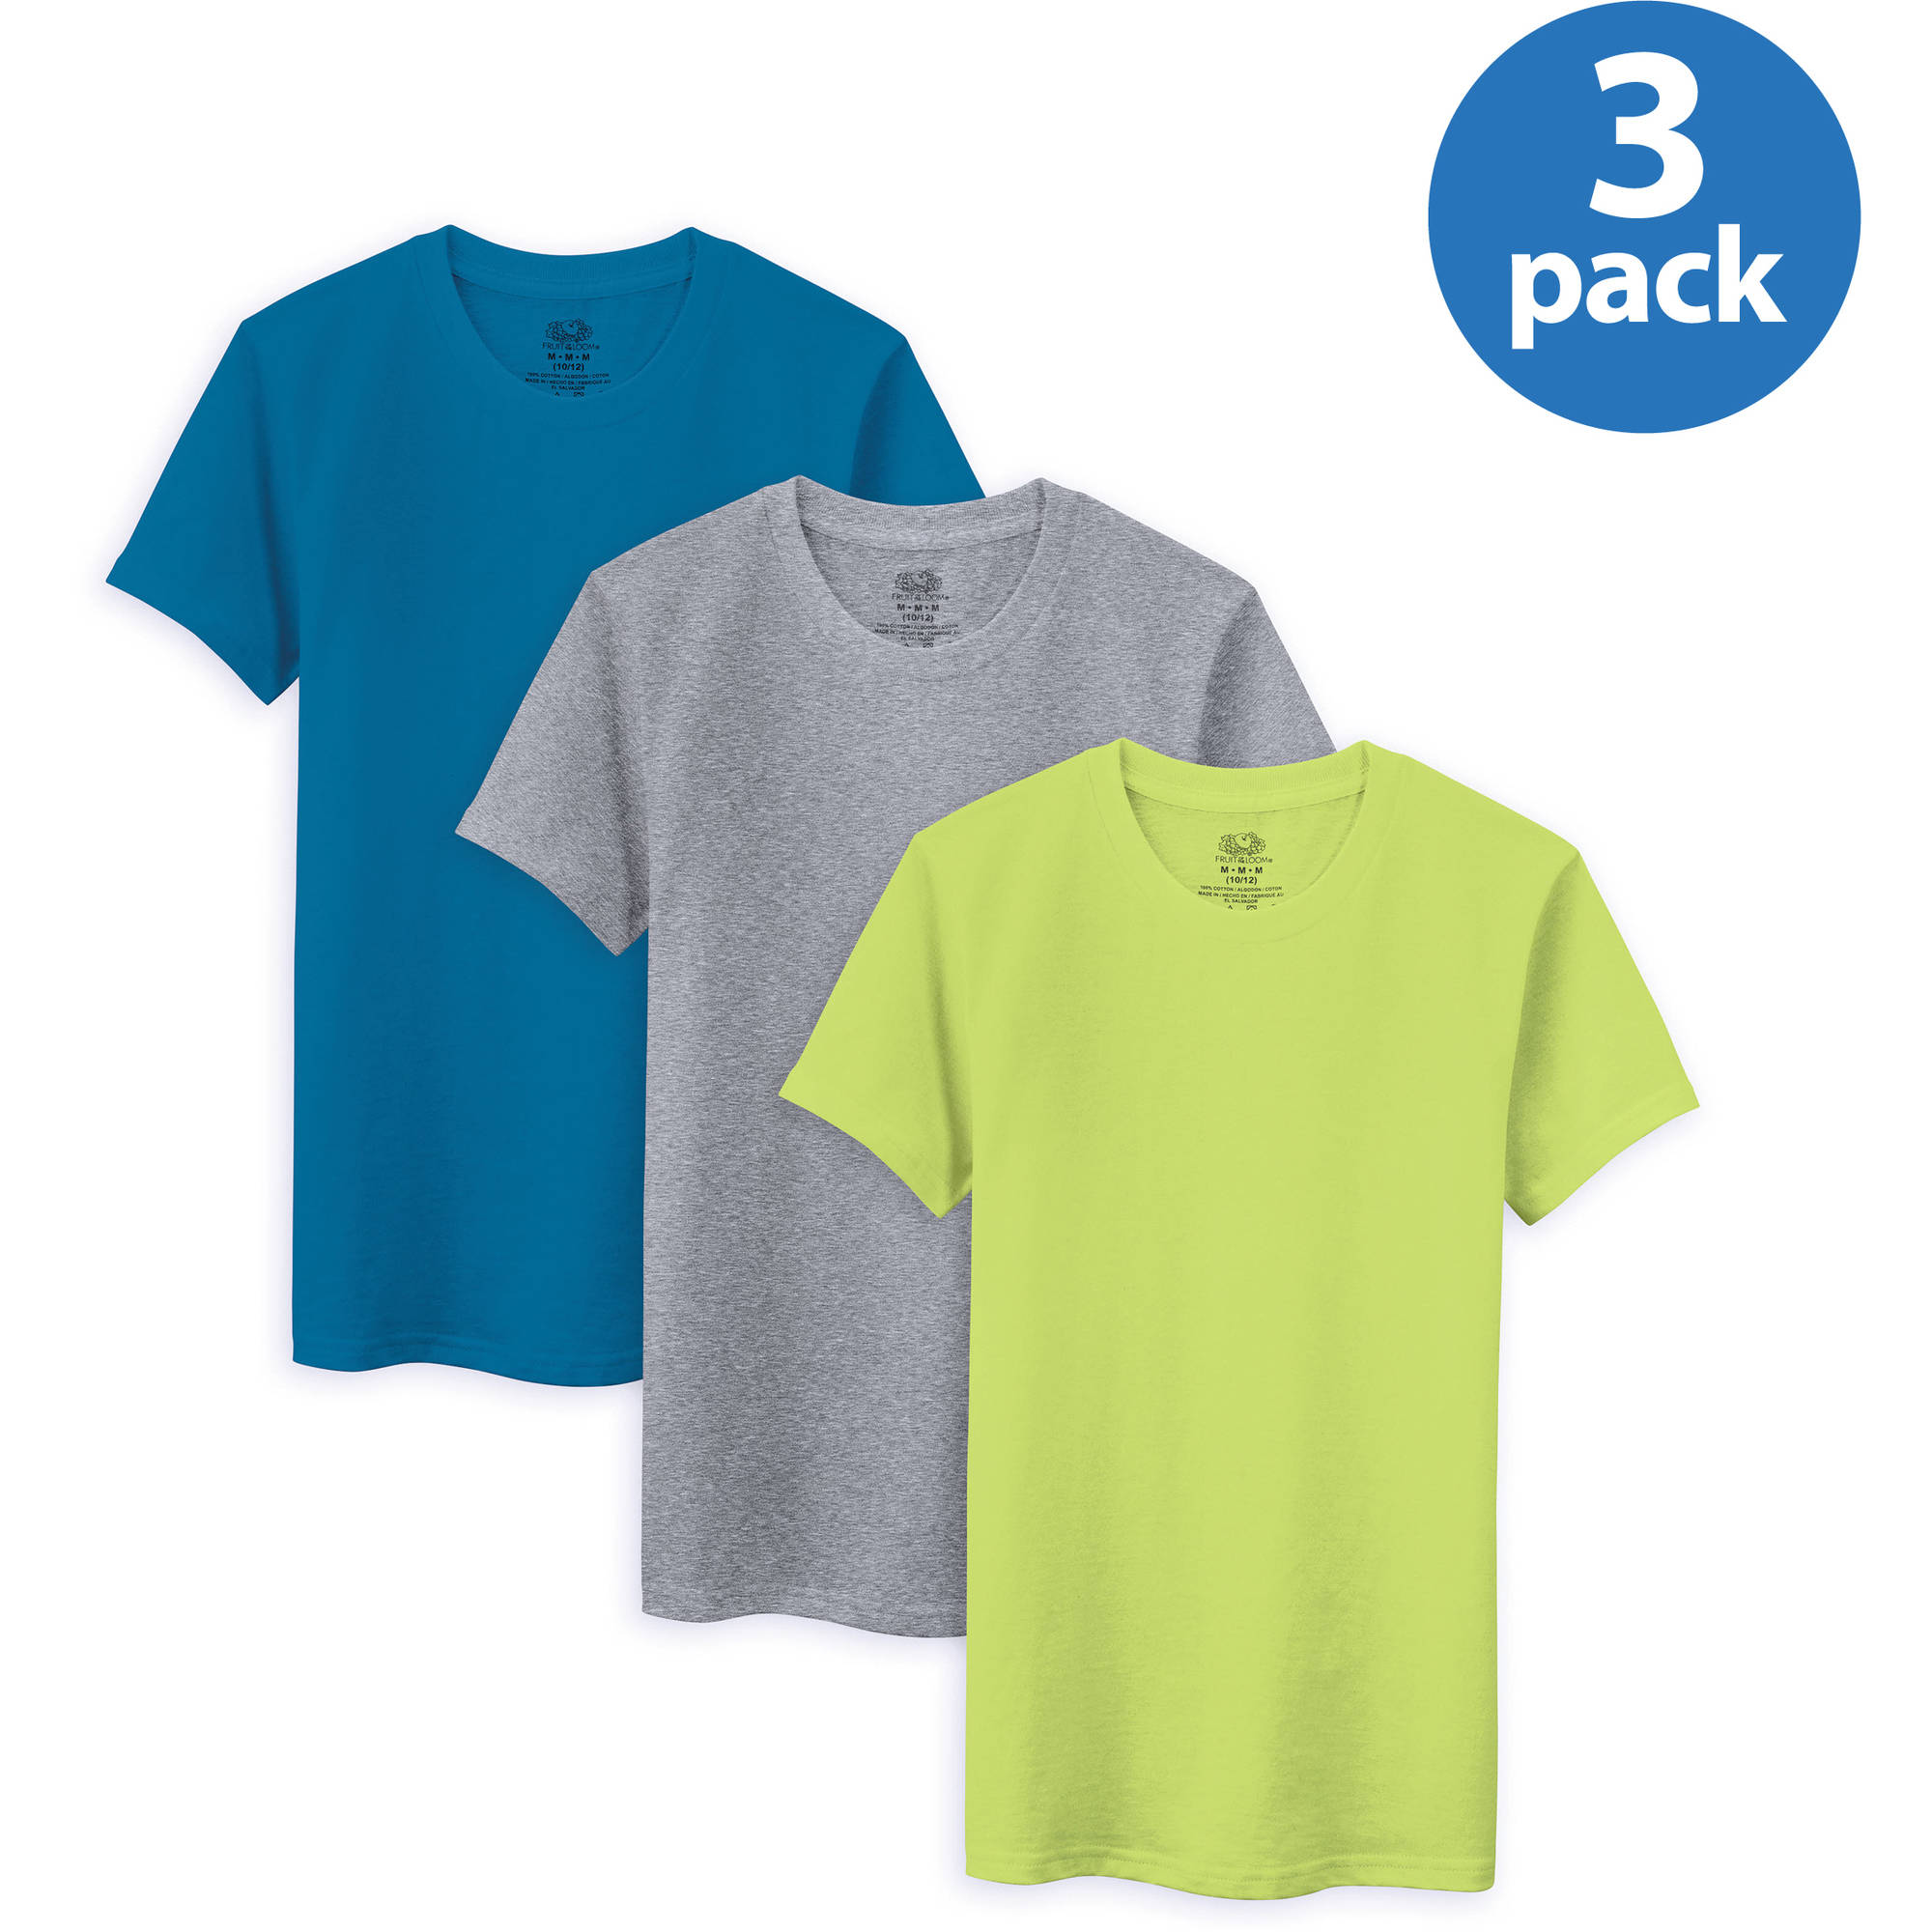 Fruit of the Loom Boys' Assorted T-shirt, 3-pack